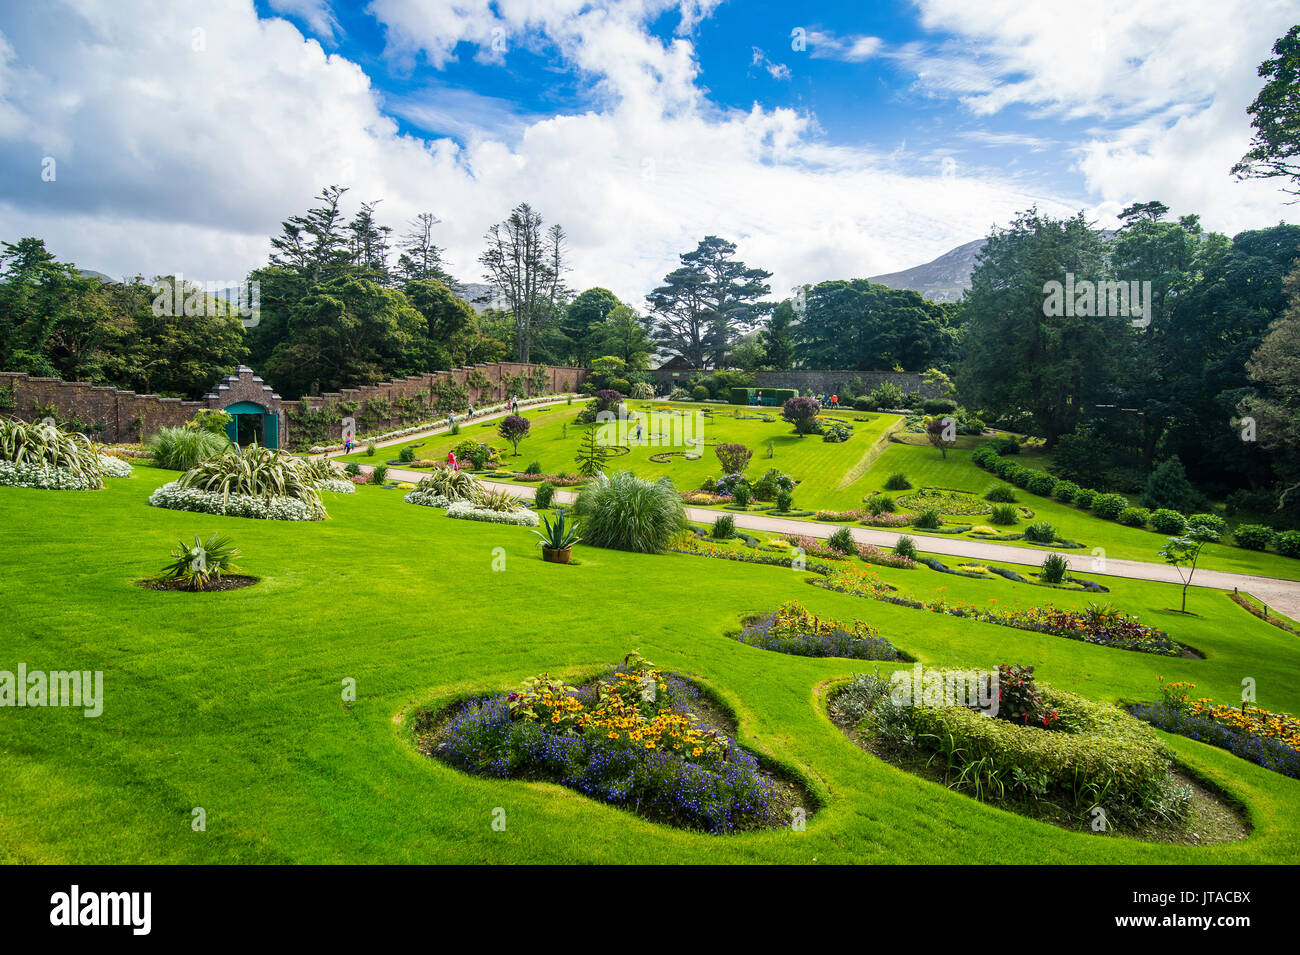 Walled Victorian garden in Kylemore Abbey, Connemara National Park, County Galway, Connacht, Republic of Ireland, Europe - Stock Image